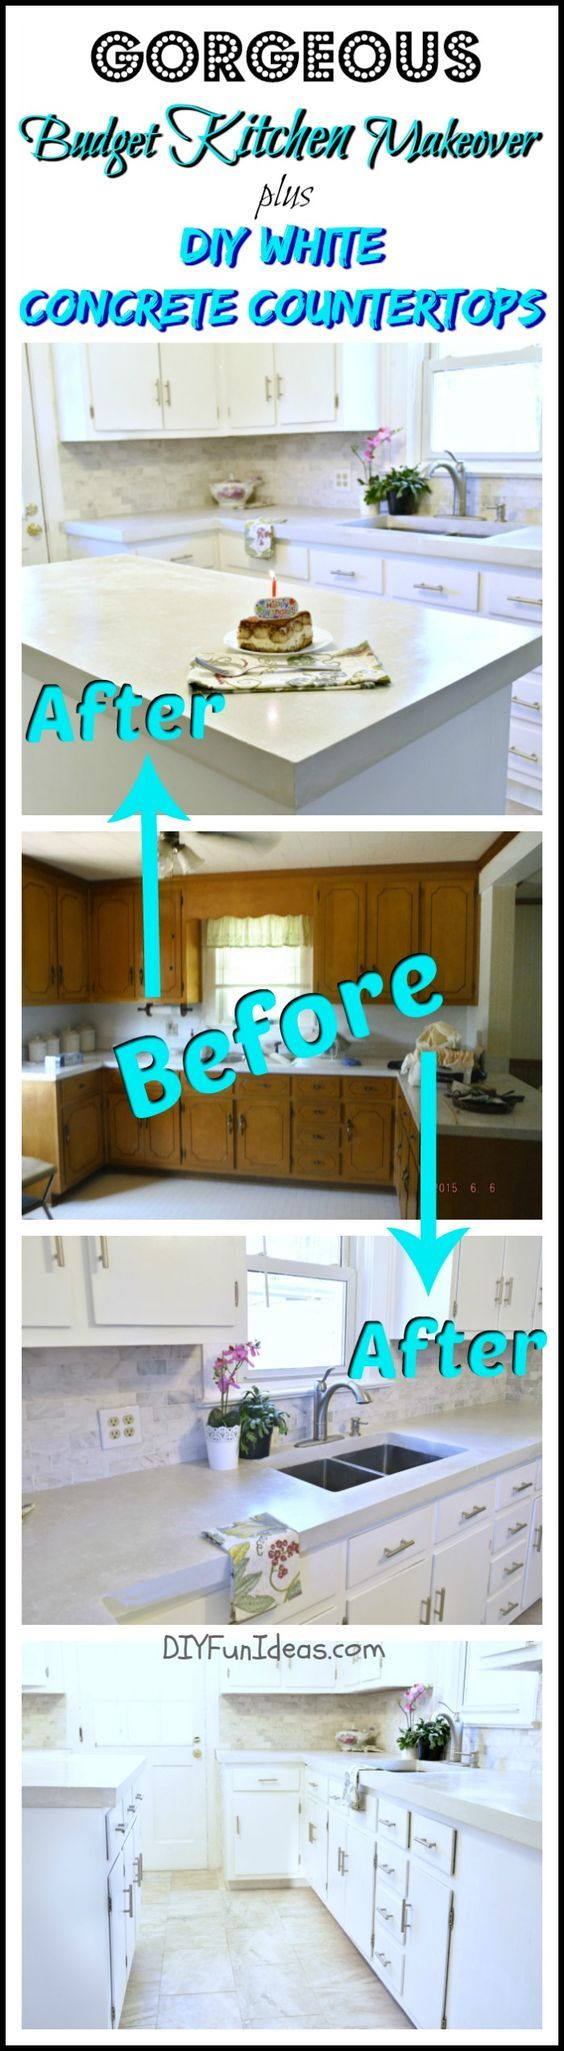 GORGEOUS BUDGET KITCHEN MAKEOVER WITH WHITE CONCRETE COUNTERTOPS ...